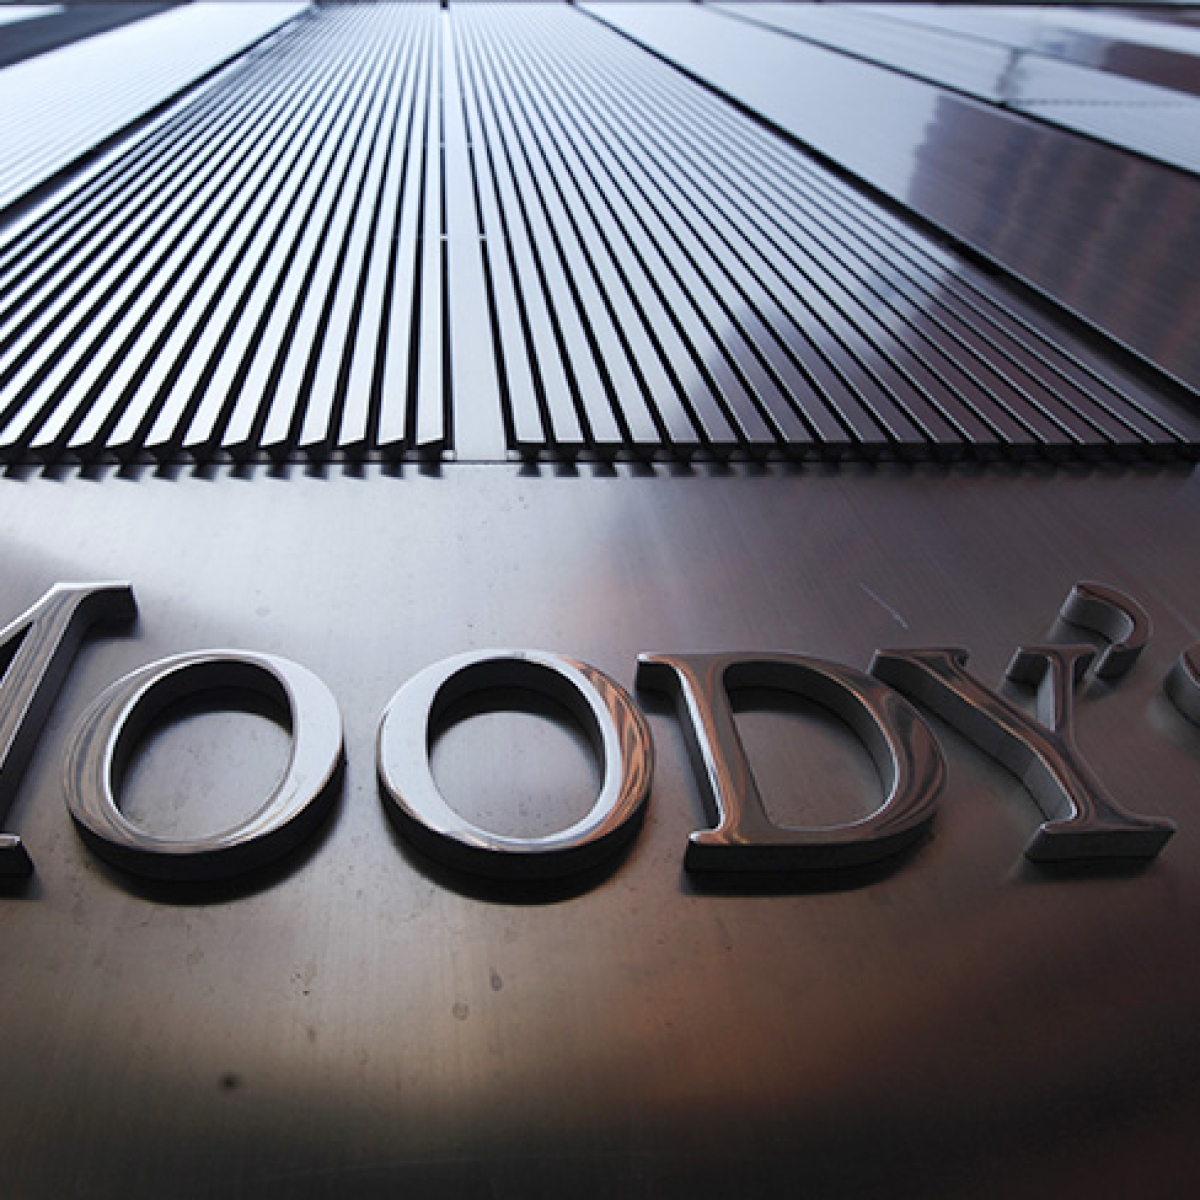 Airline sector: Recovery unlikely to be before 2023, says Moody's